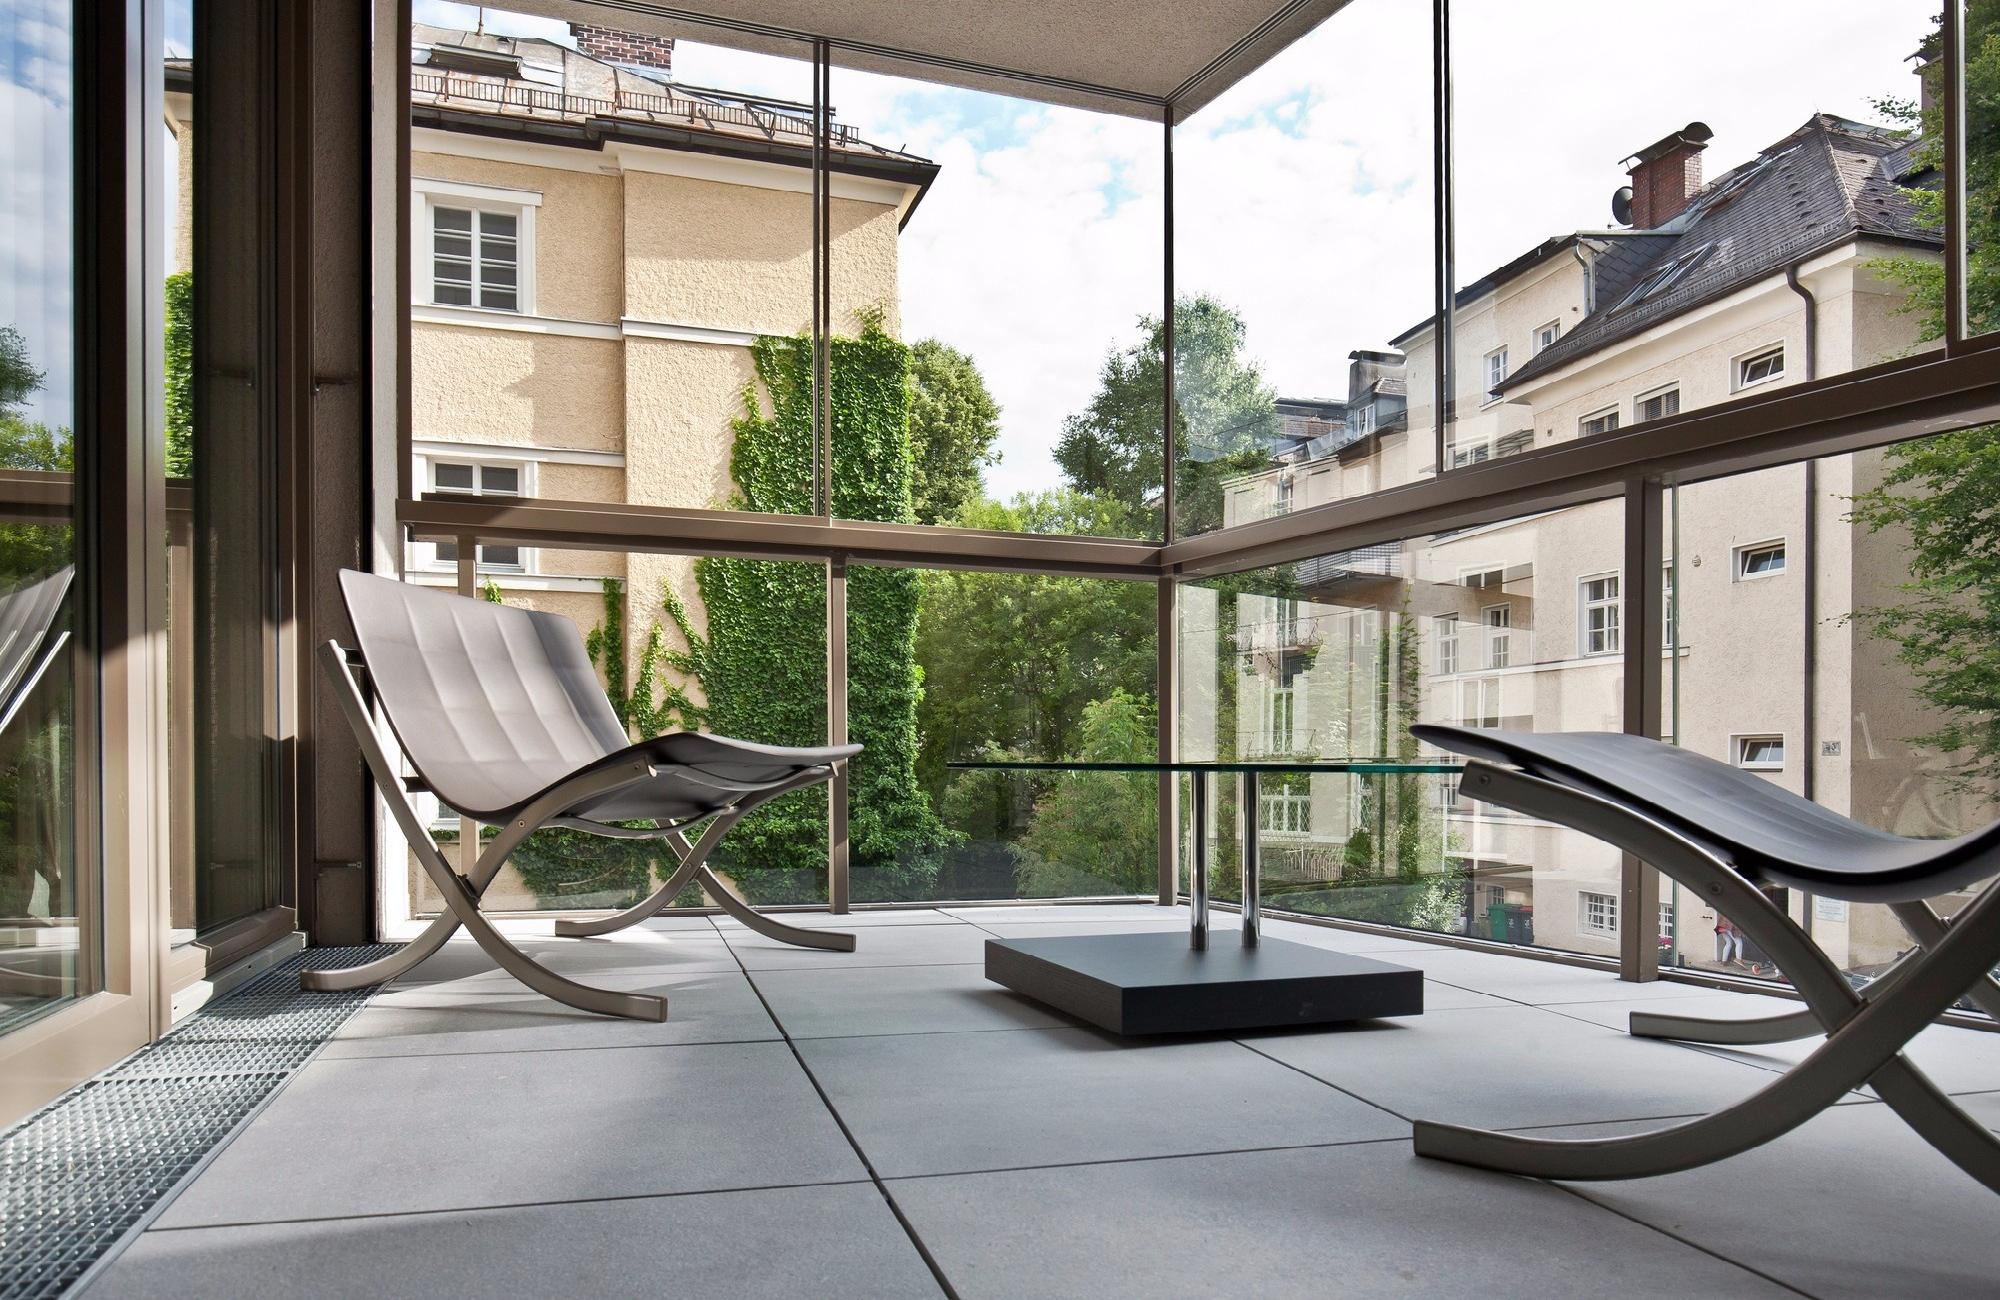 Bienes Raíces en Austria - Luxurious apartments in a prime location of Salzburg